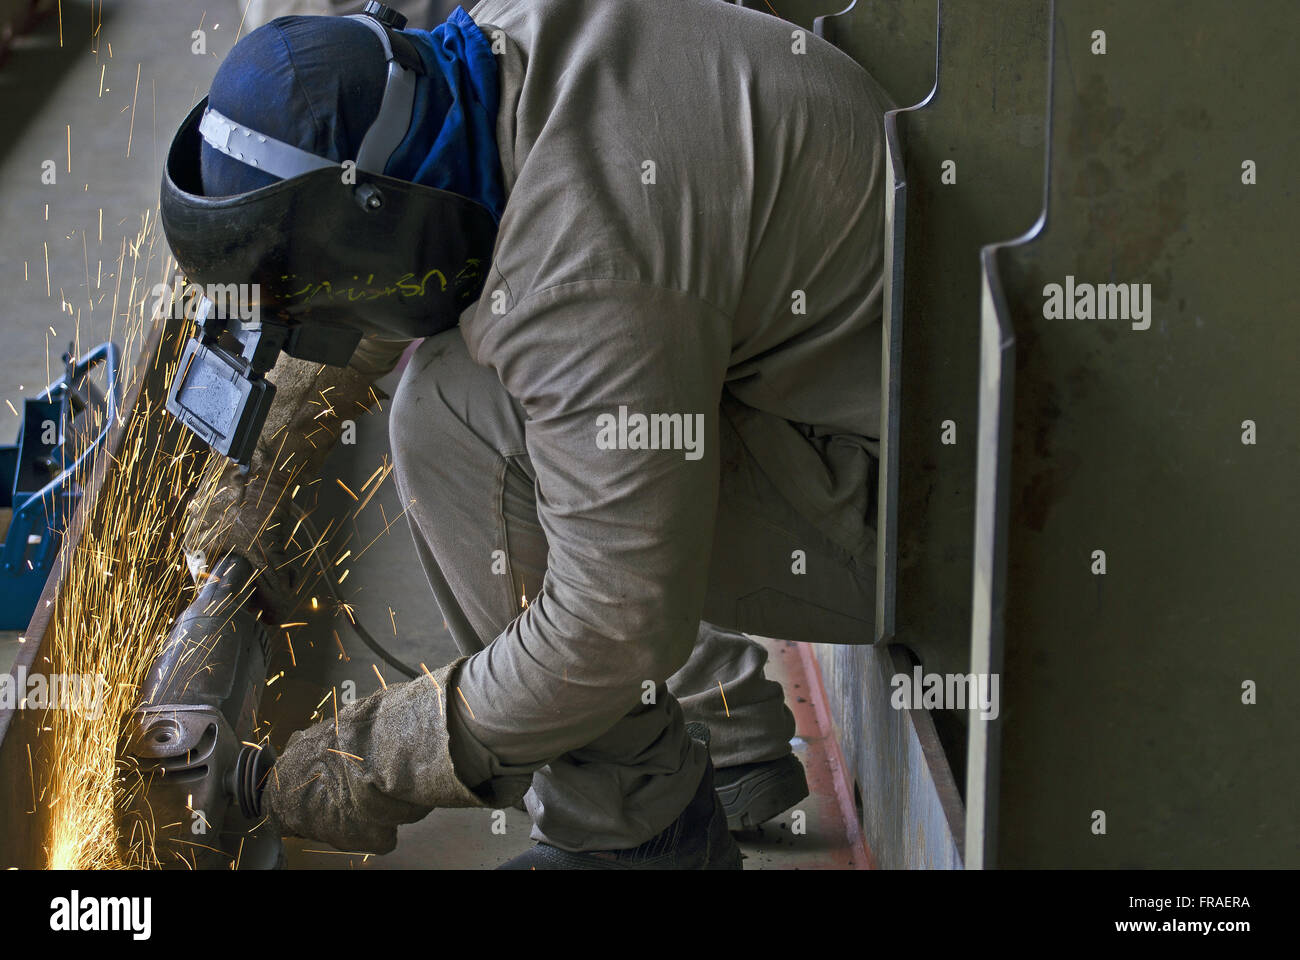 Laborer with sander in shipbuilding - Stock Image